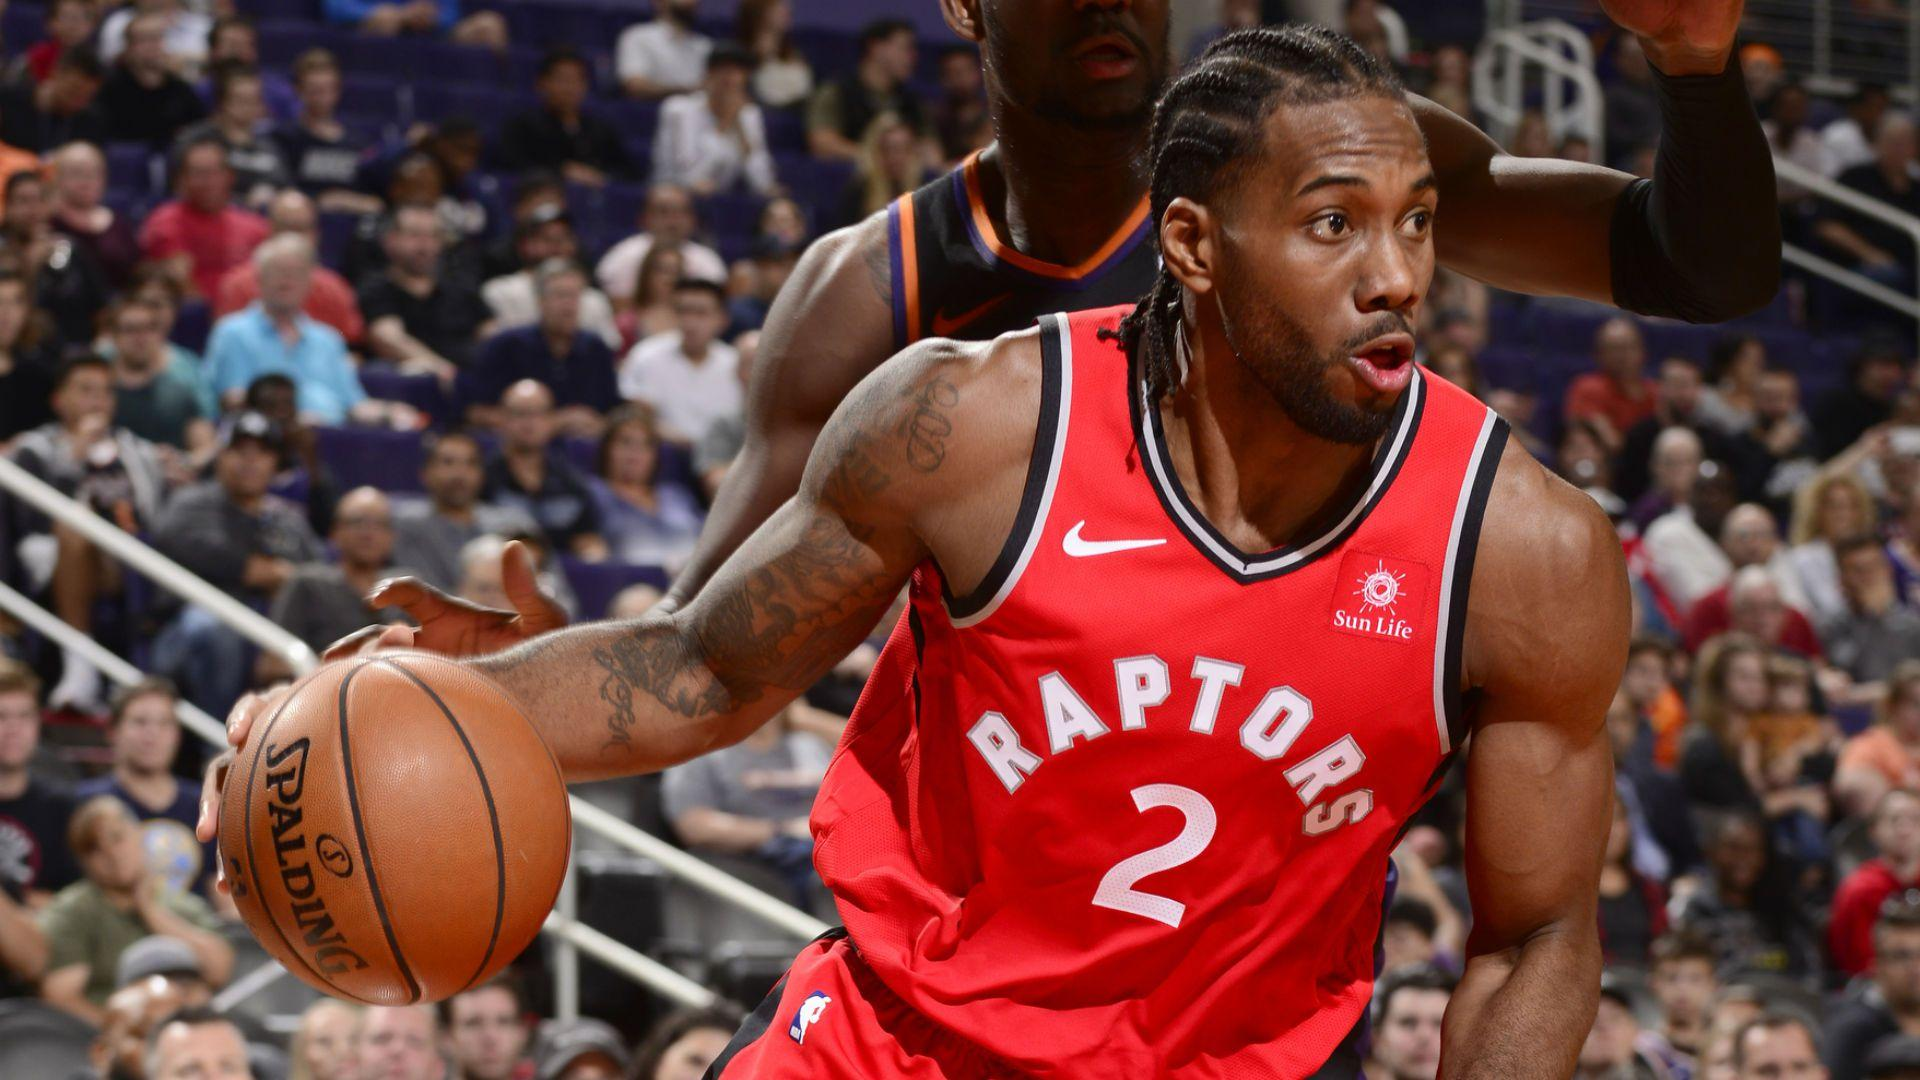 Kawhi Leonard has agreed a shoe deal with New Balance